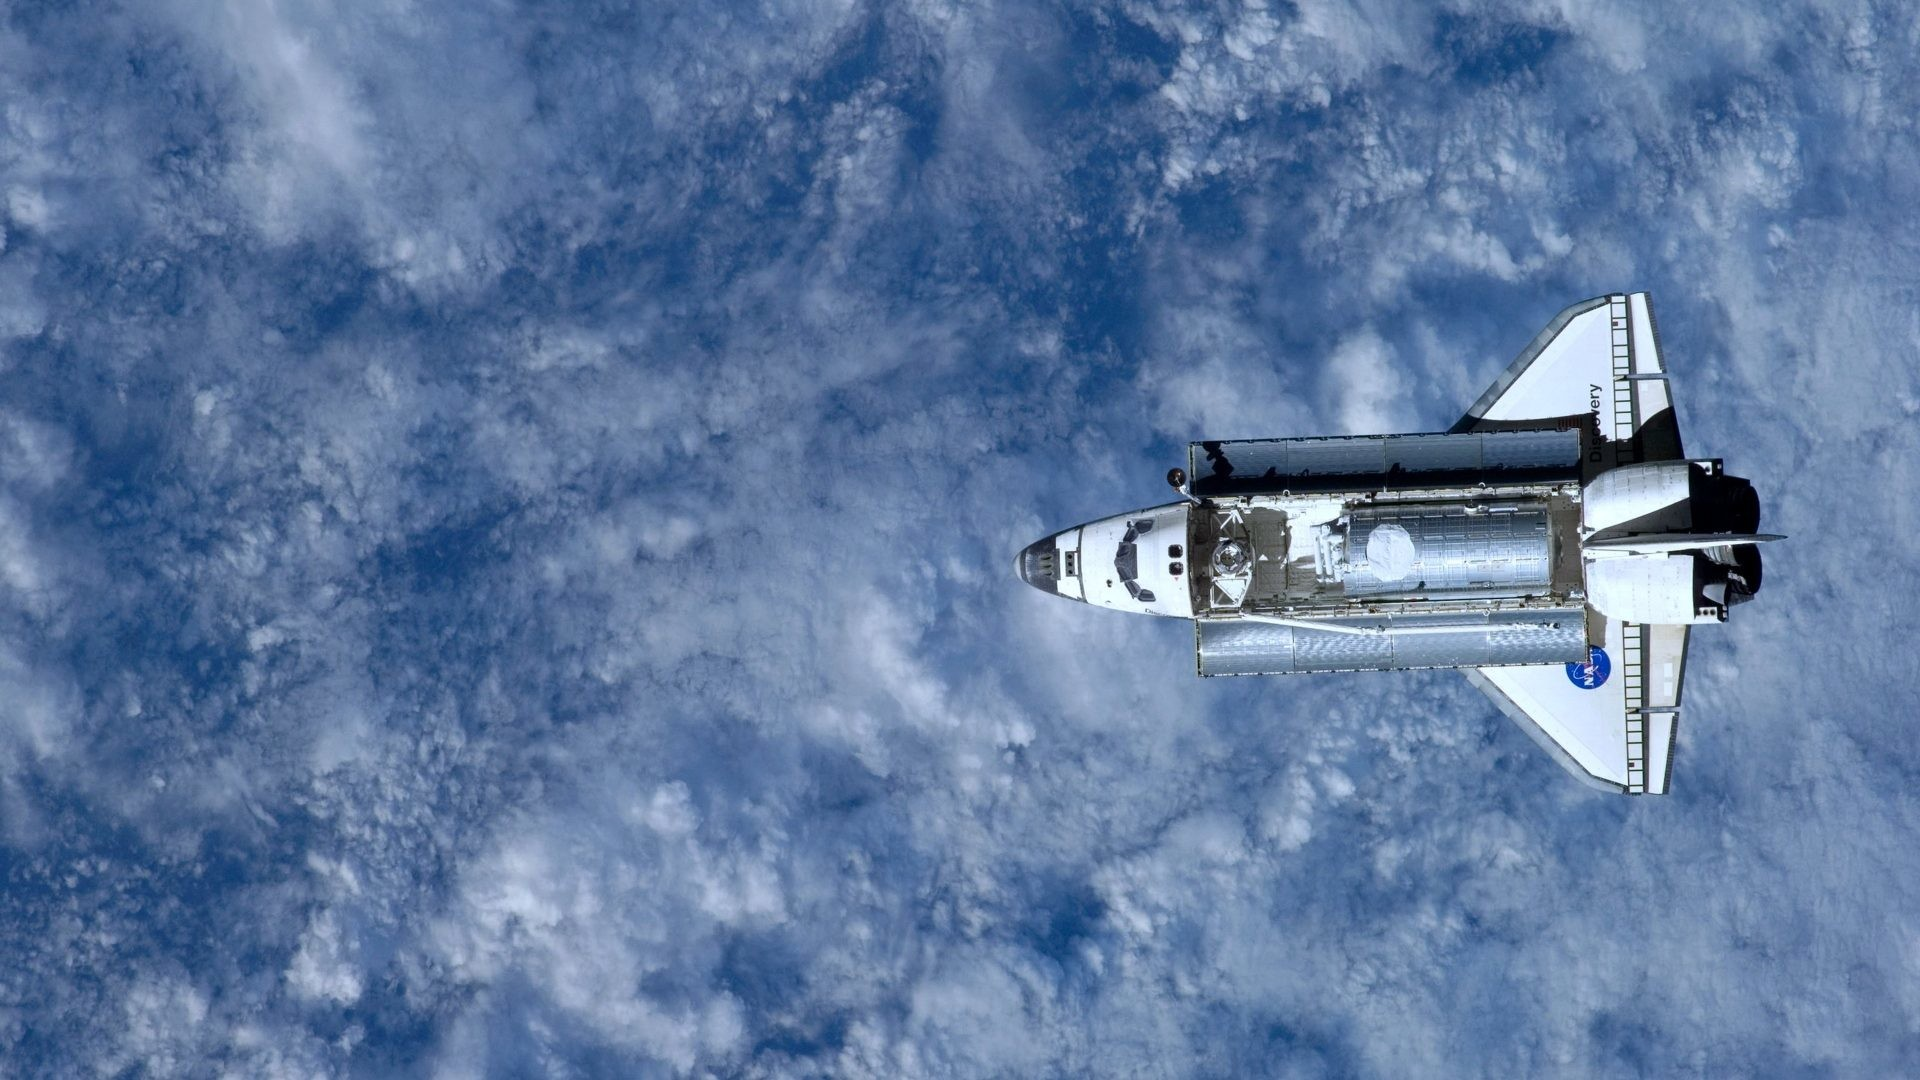 Space – Base Nasa Astronauts Sky Technology Earth Satellite Shuttle Space  Unpack Full Size Images Nature